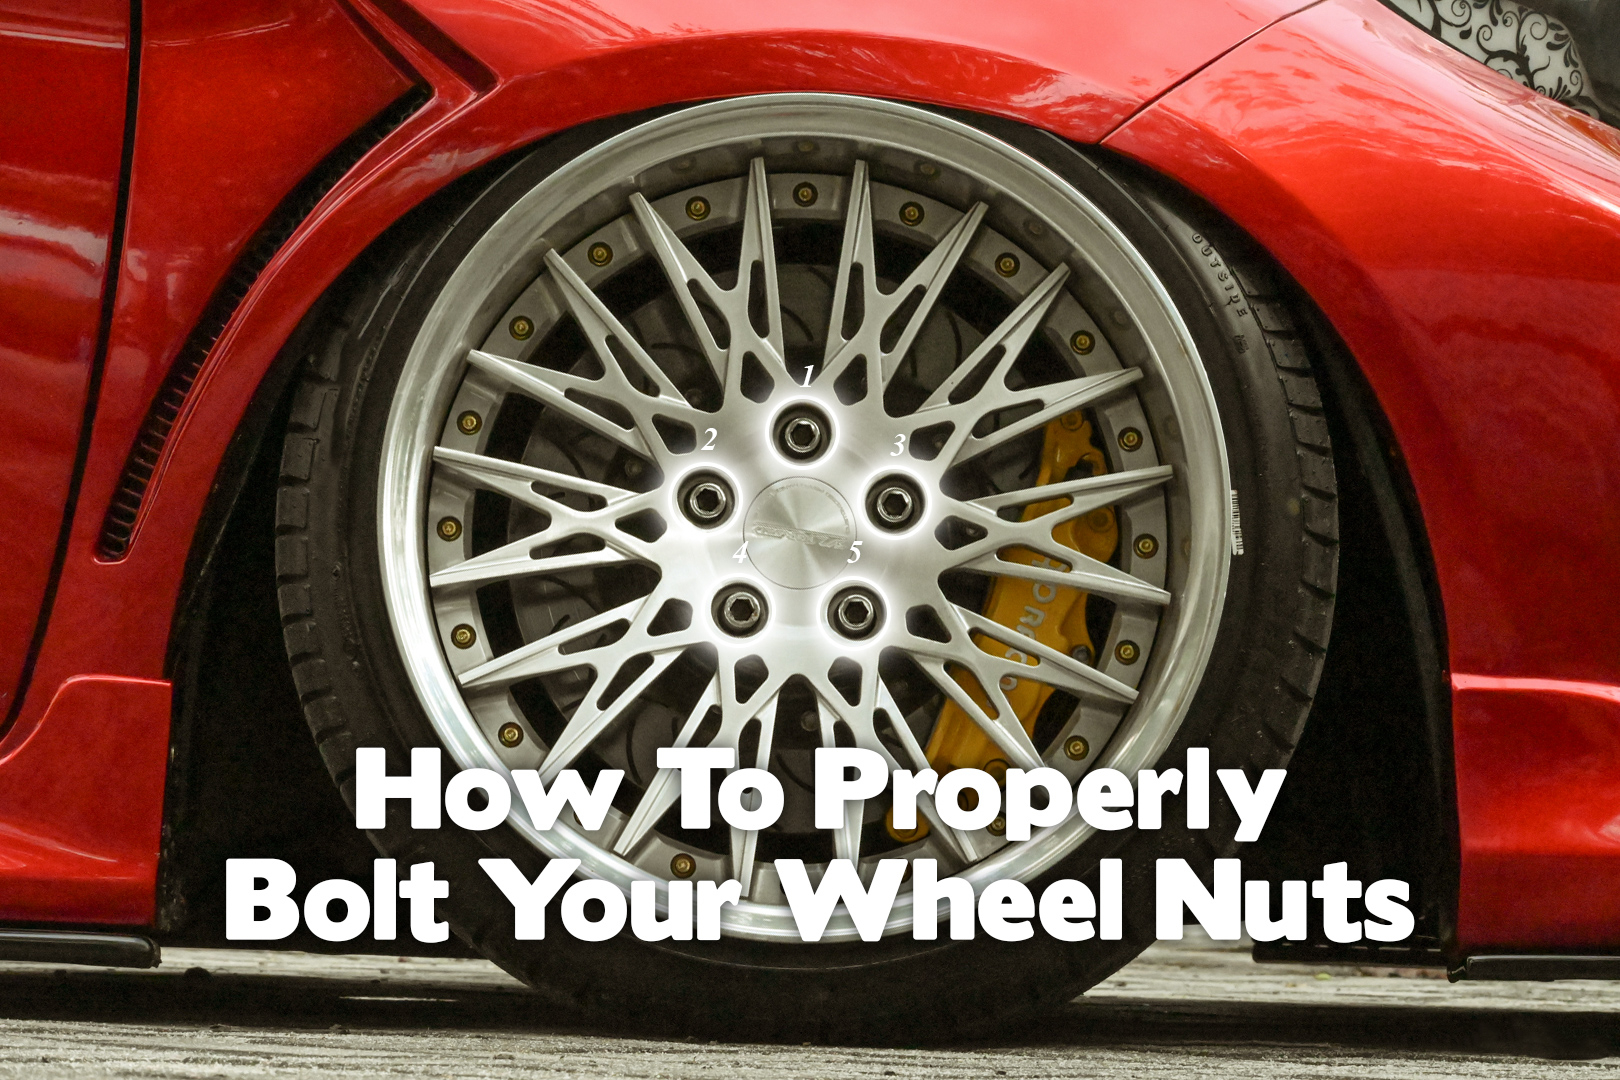 How To Properly Bolt Your Wheel Nuts